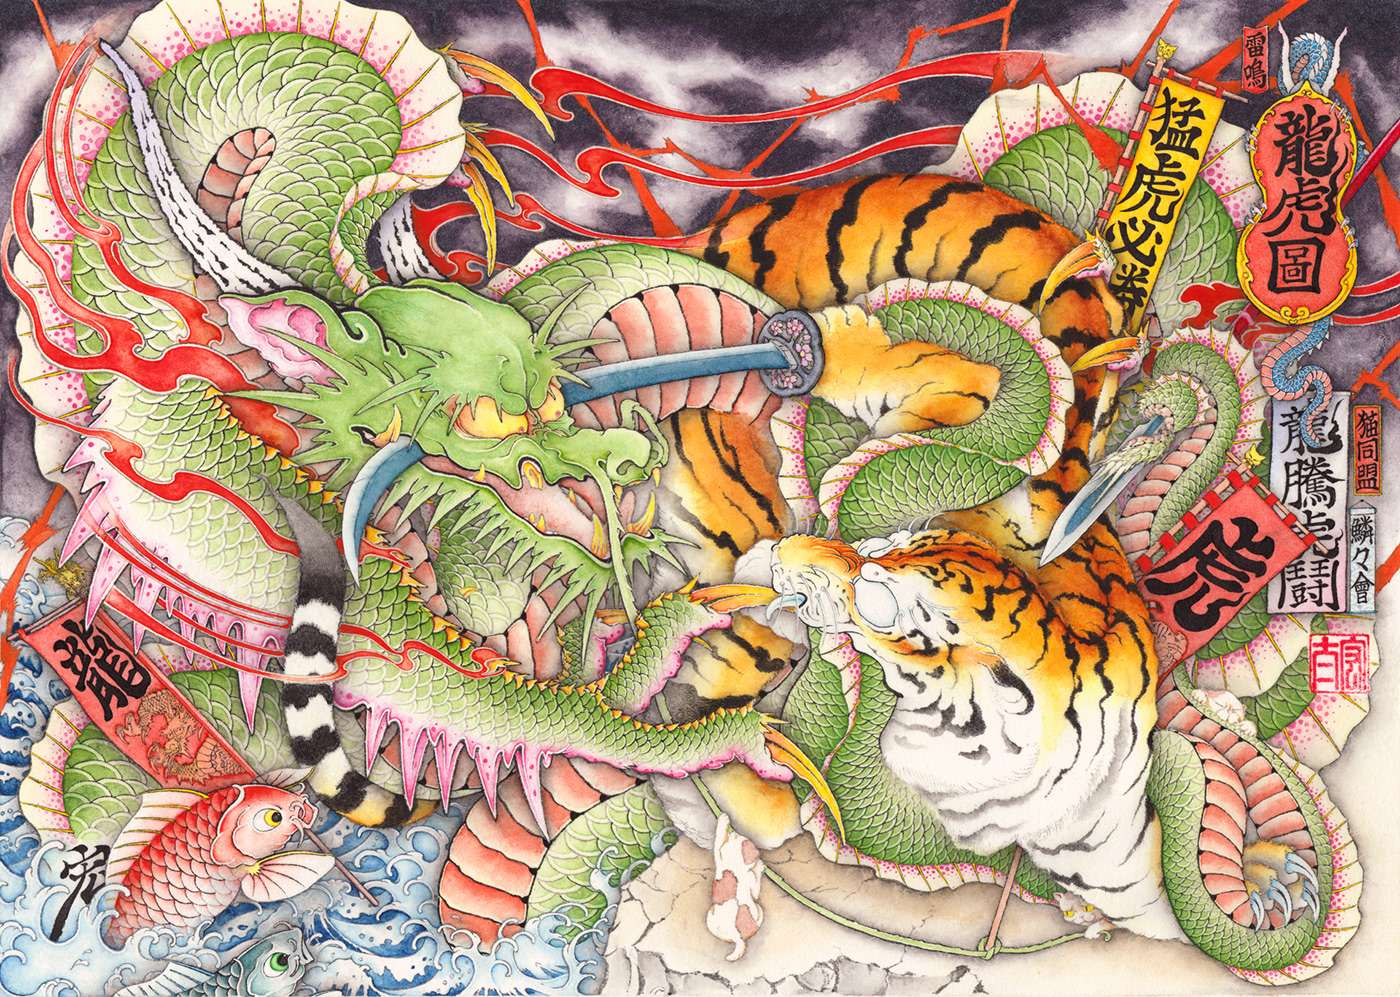 Tiger vs Dragon UKIYO-E on Behance